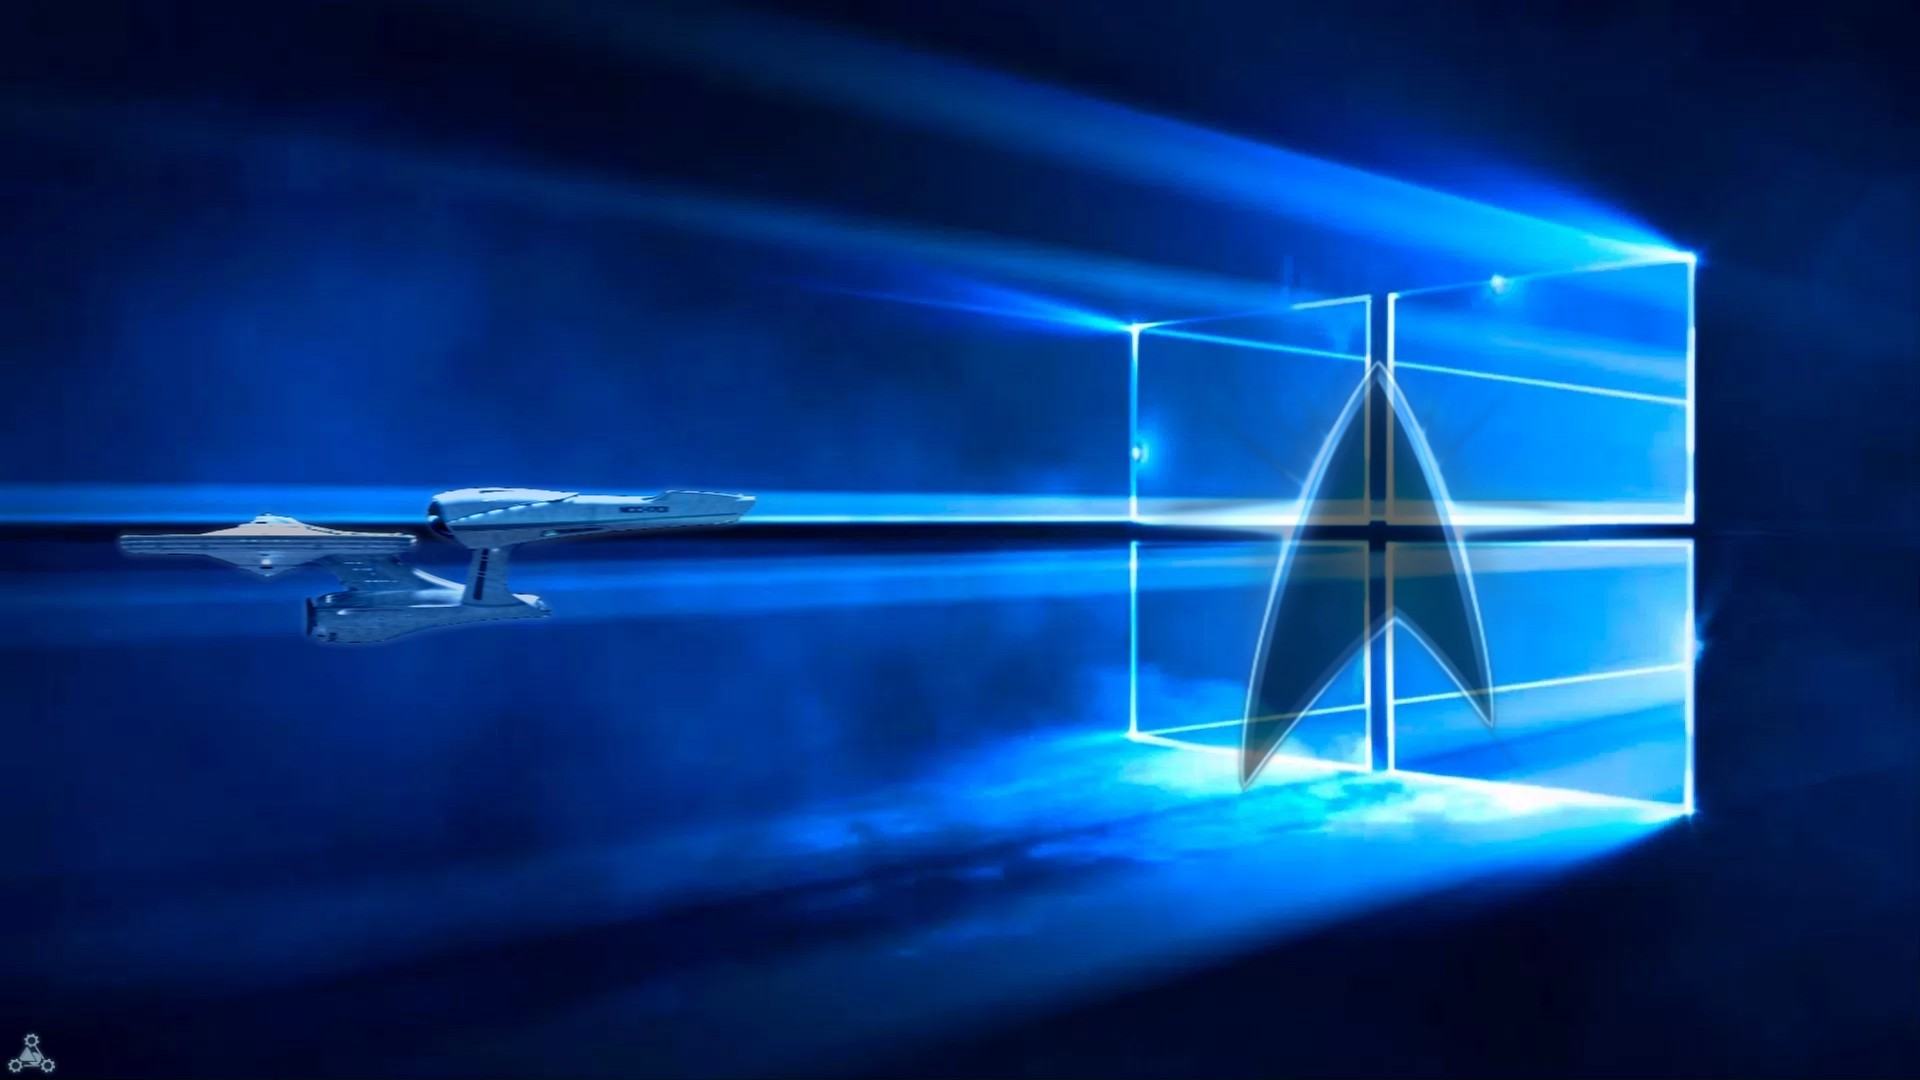 Windows 10 Star Trek Wallpaper